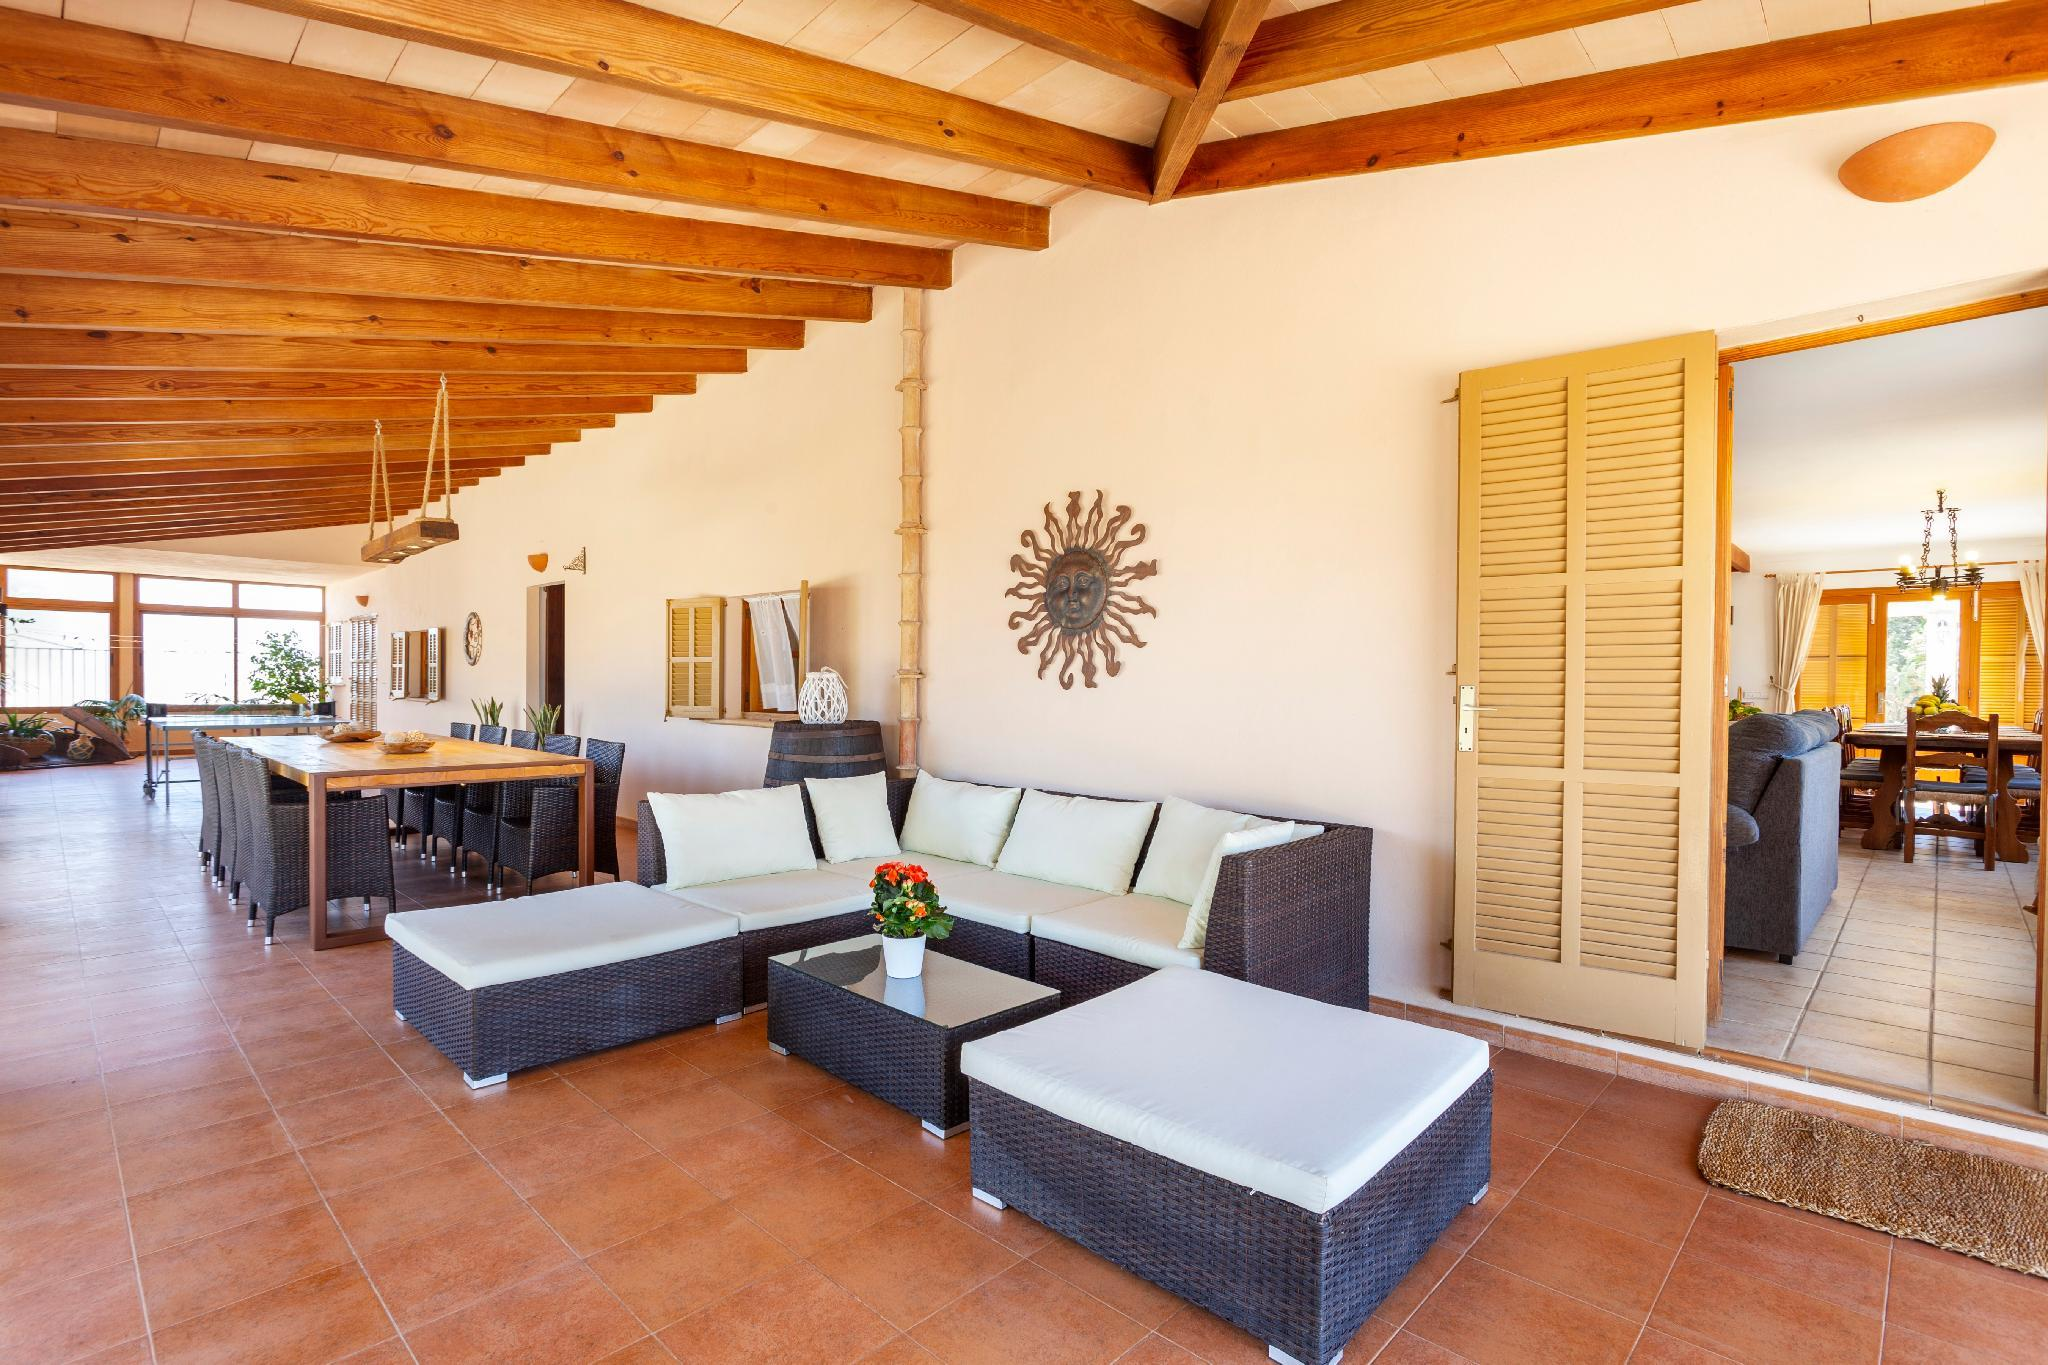 Villa in Can Picafort, located in the countryside, near the beach, has 5 bedroom